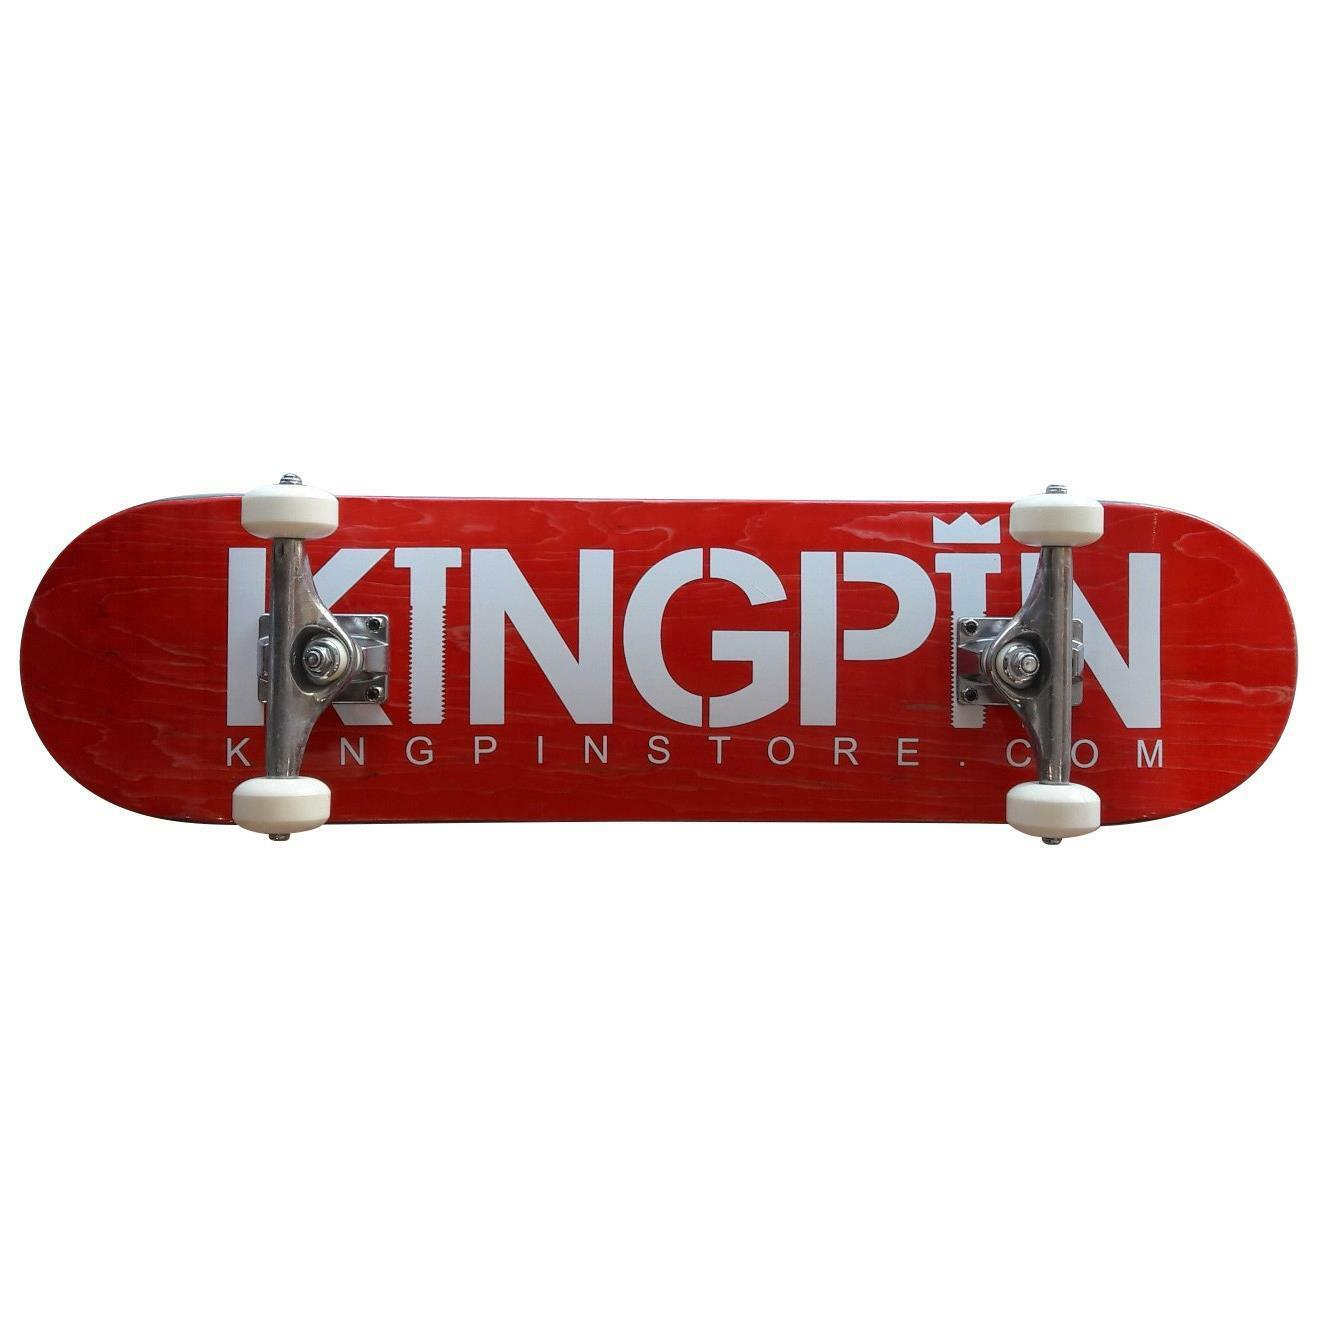 KINGPIN S  Supply Complete S board Red 7.875   FREE POST  order online